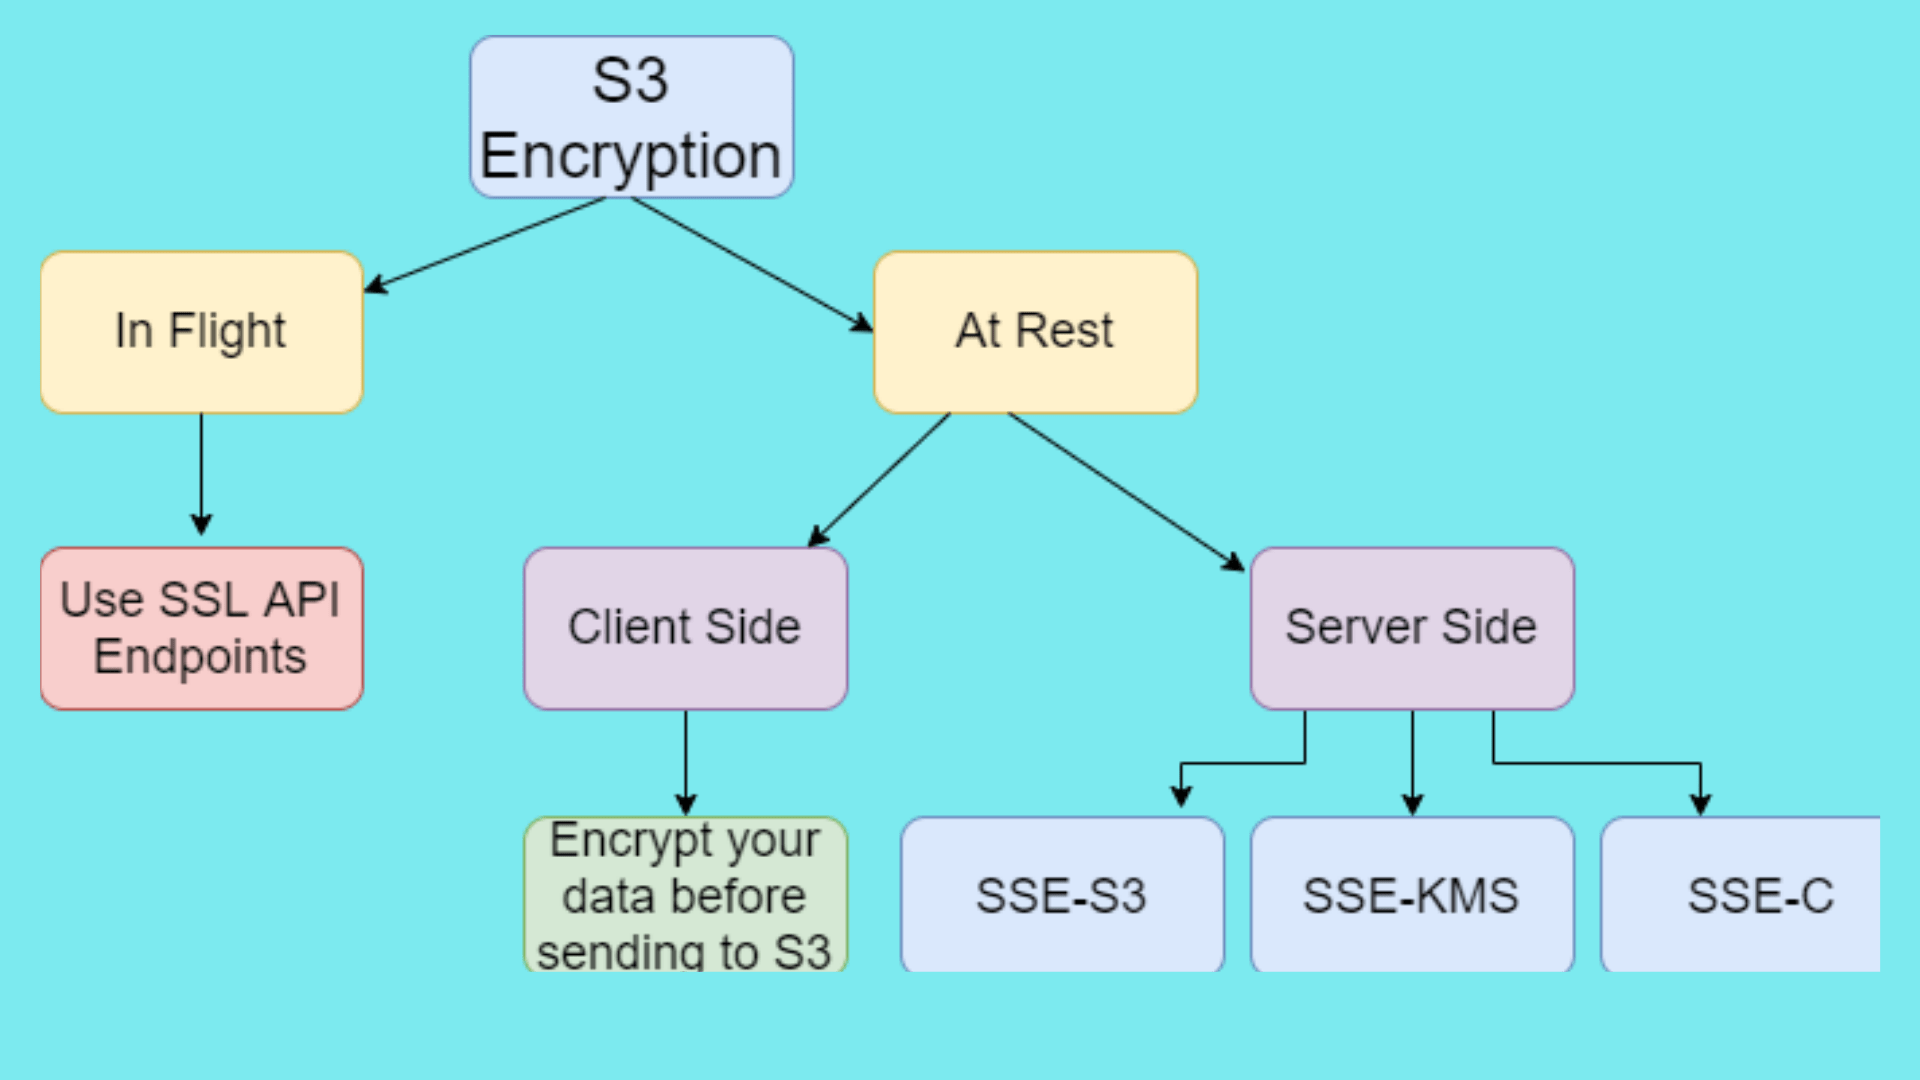 AWS S3 Encryption Way to Protect Your Data in S3